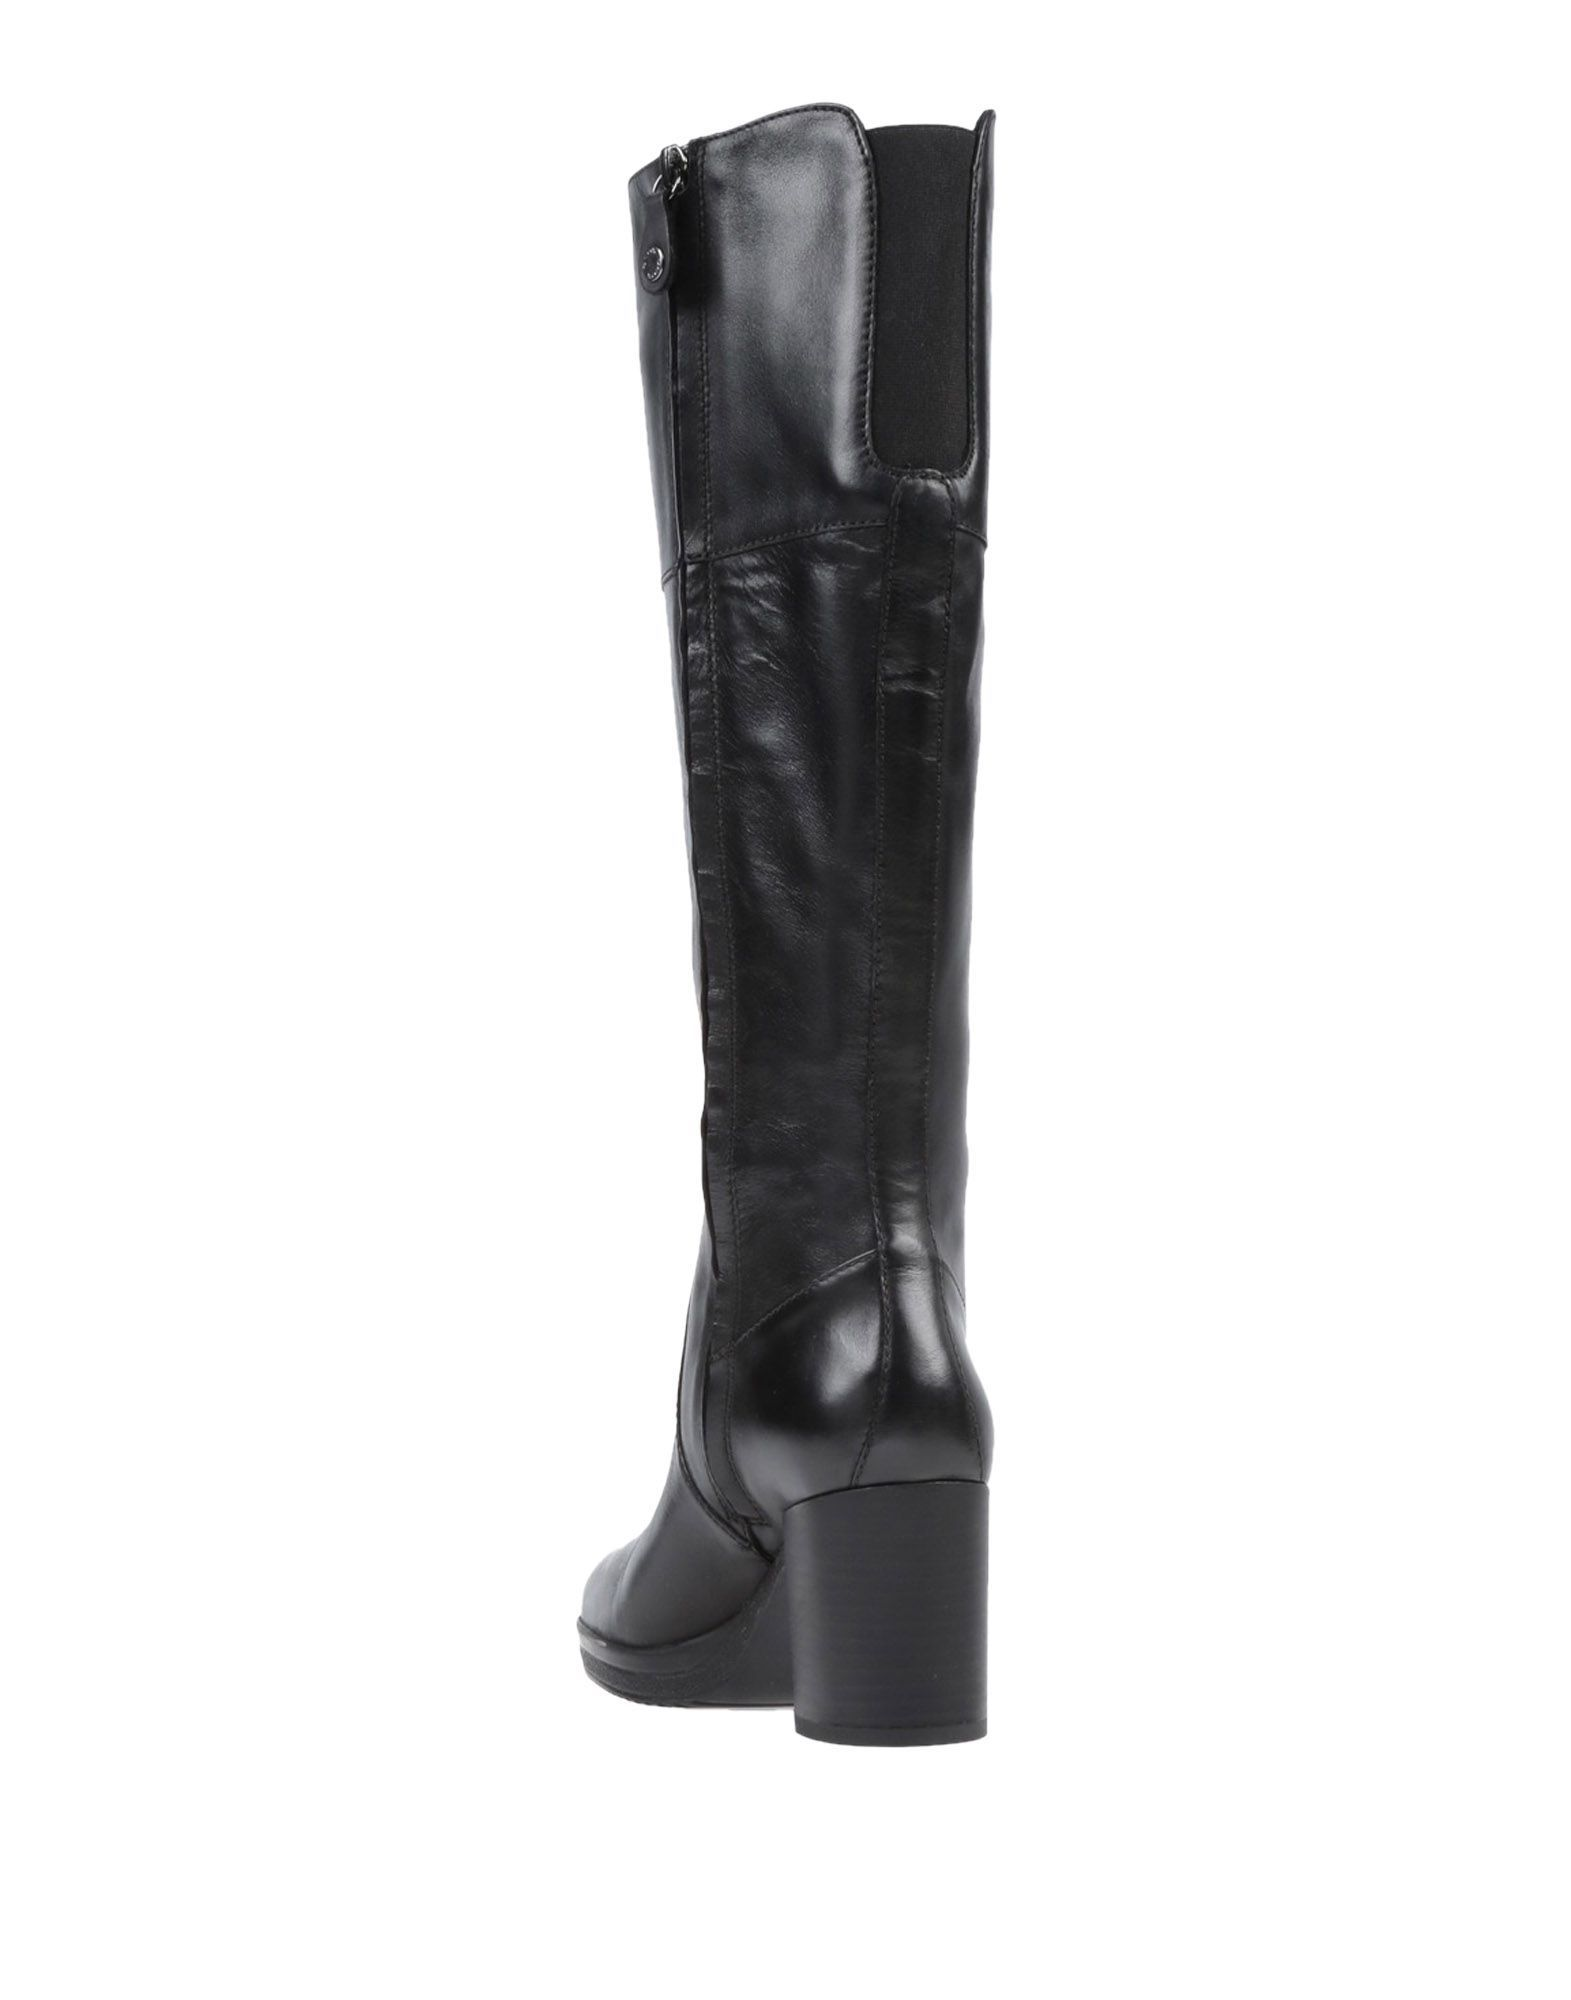 Geox Black Leather Knee High Boots